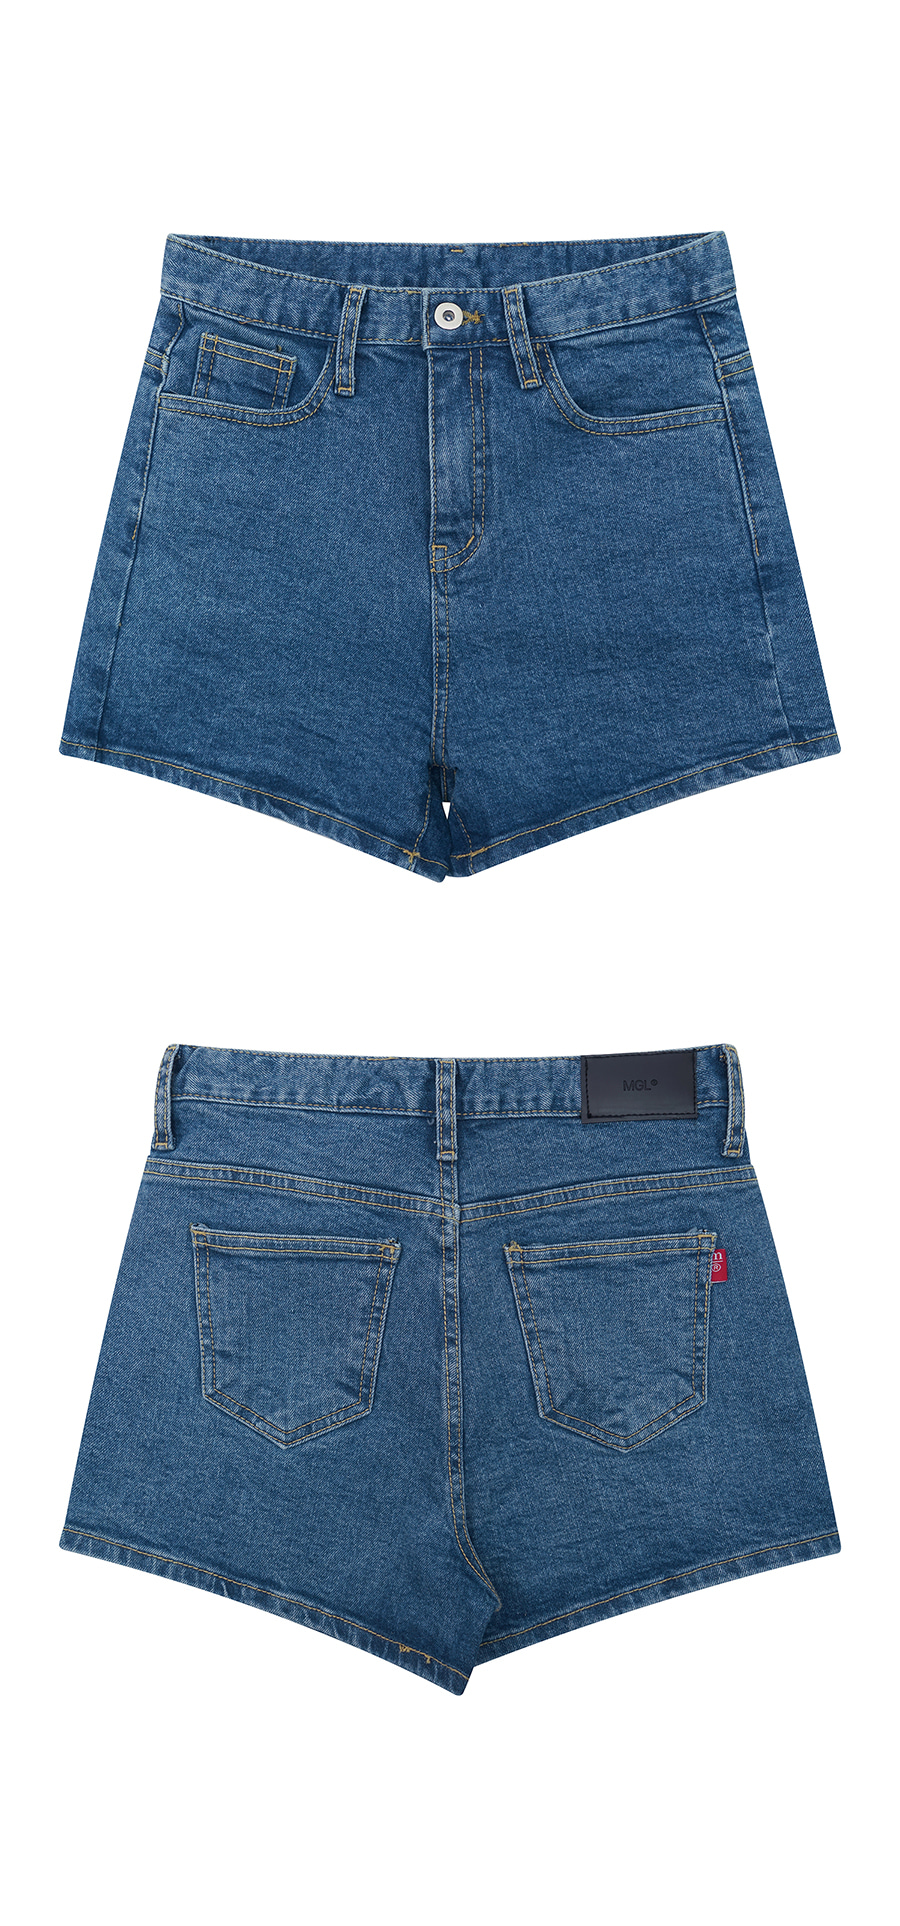 매치글로브(MATCHGLOBE) MG9S DENIM BASIC SHORTS (BLUE)